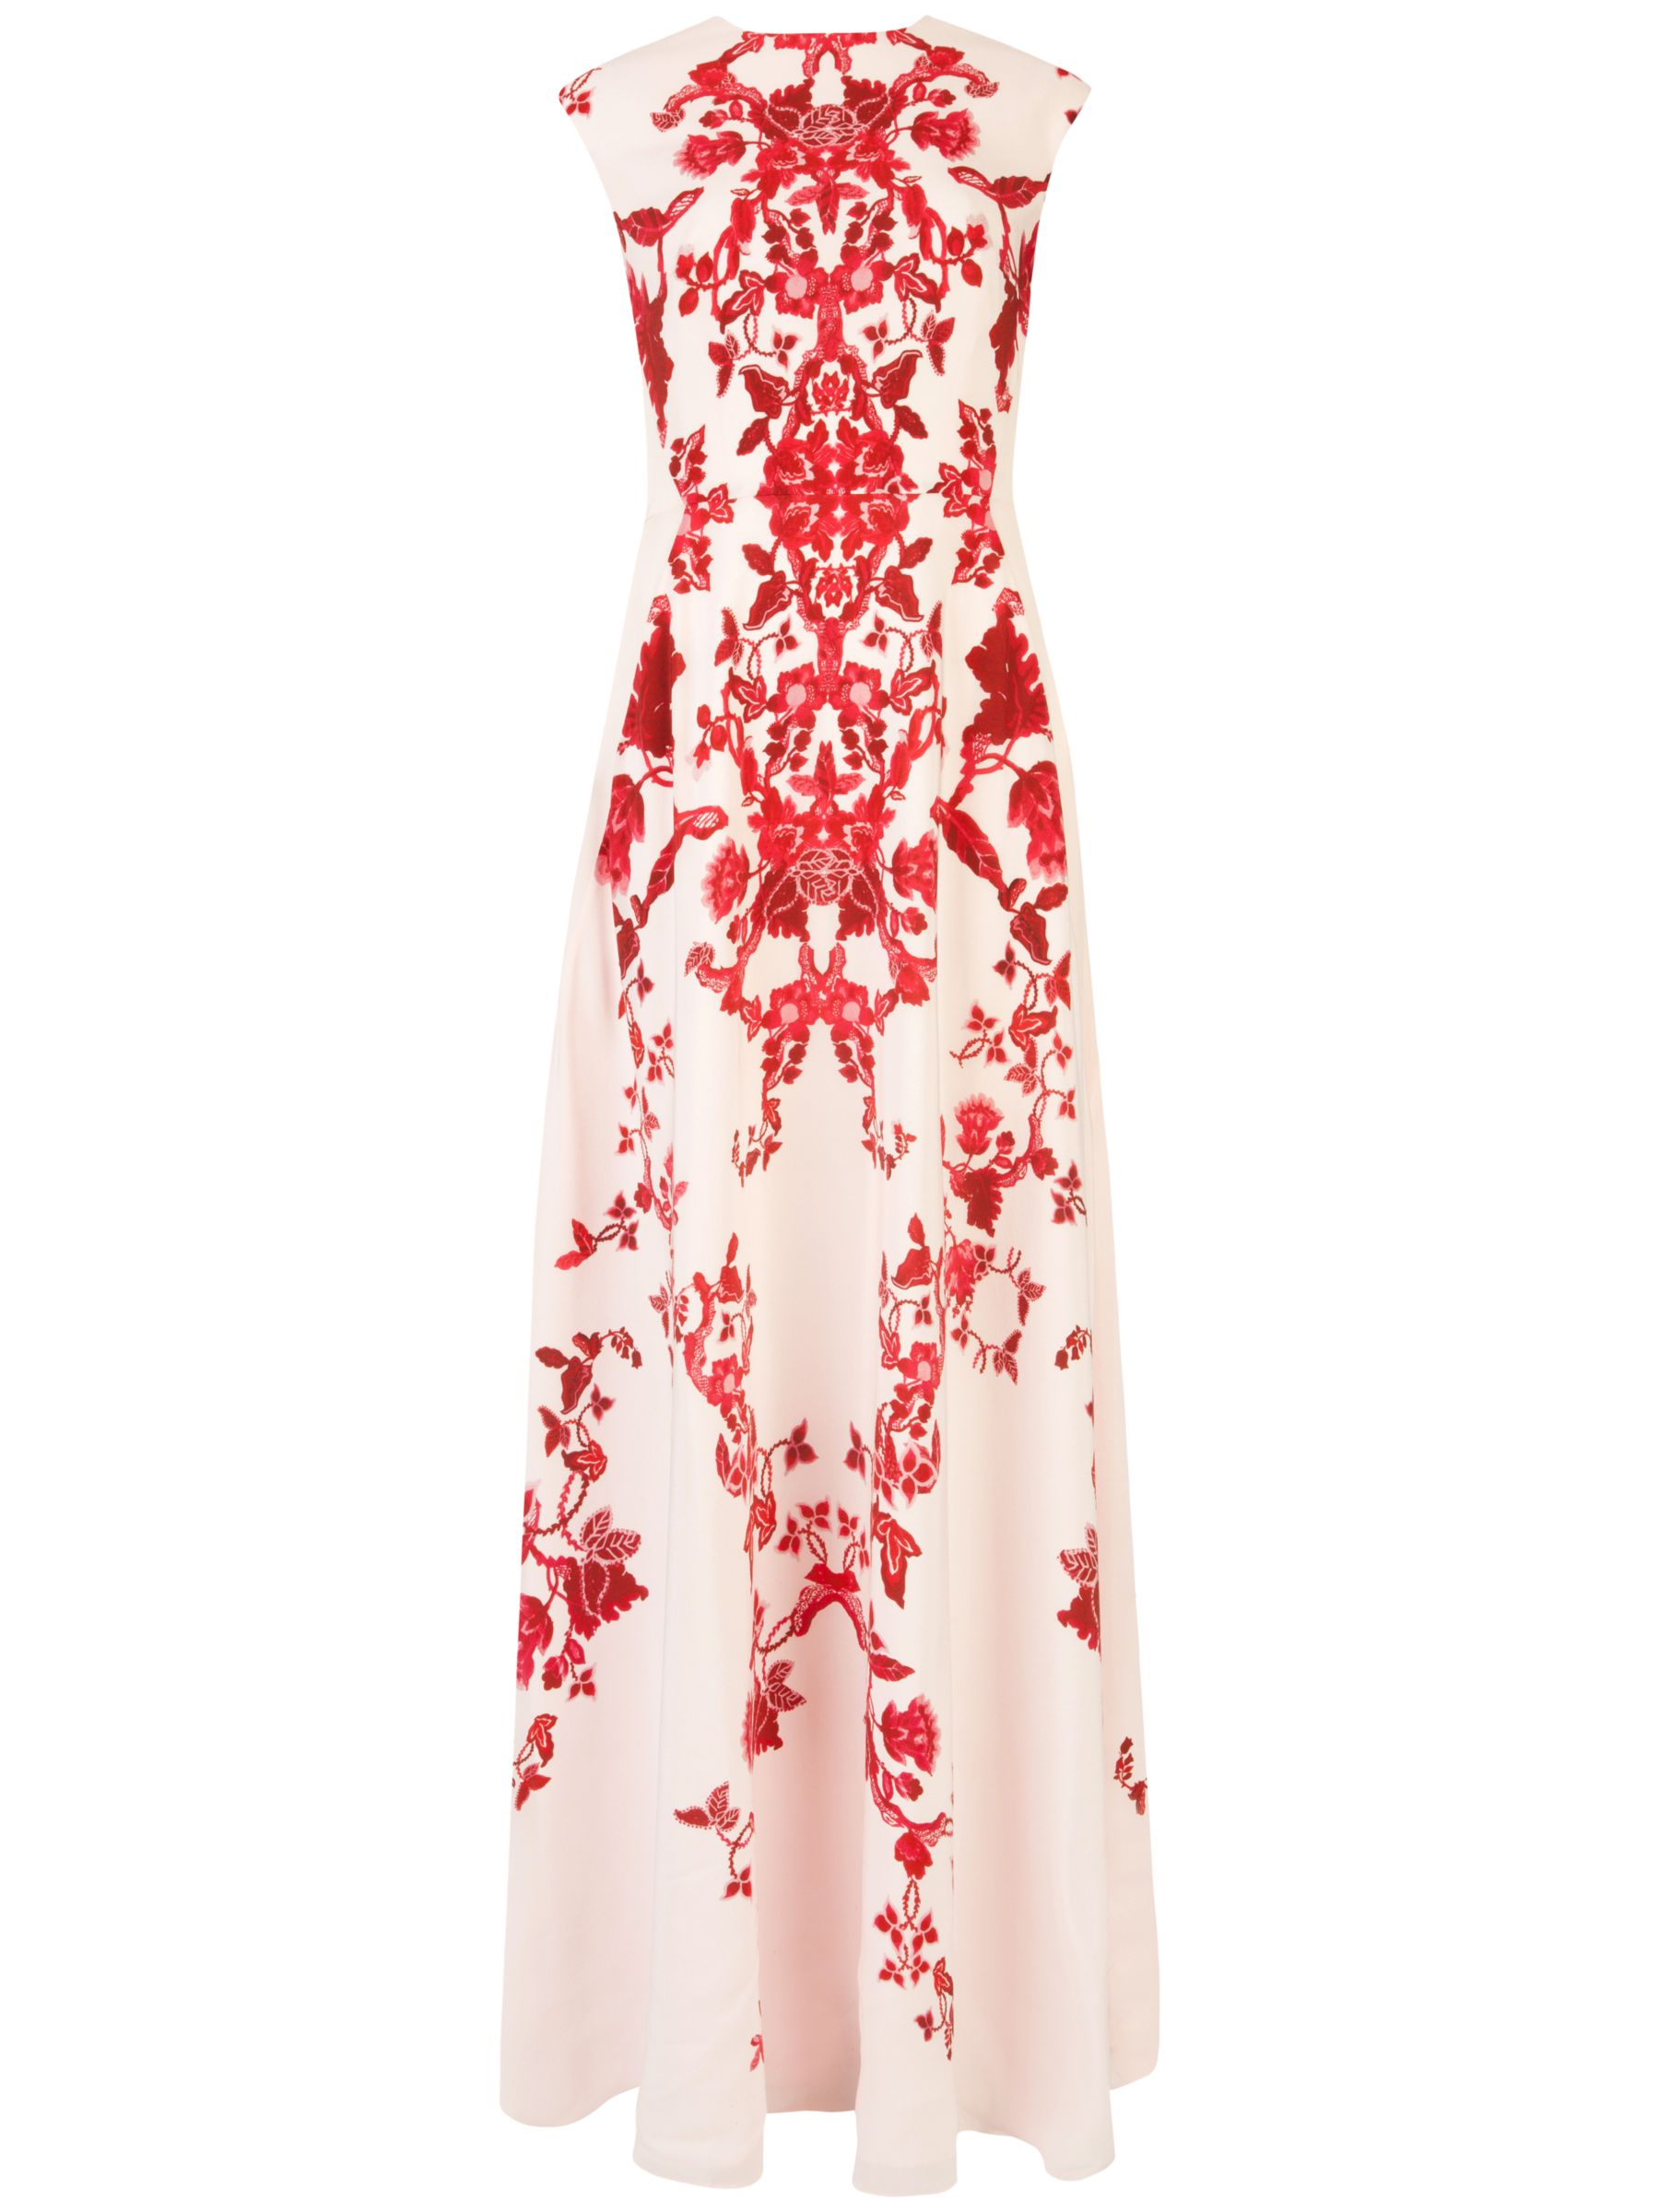 ted baker nelum china maxi dress nude pink, ted, baker, nelum, china, maxi, dress, nude, pink, ted baker, 0|2|5|4|3|1, women, womens dresses, fashion magazine, womenswear, men, brands l-z, 1843908